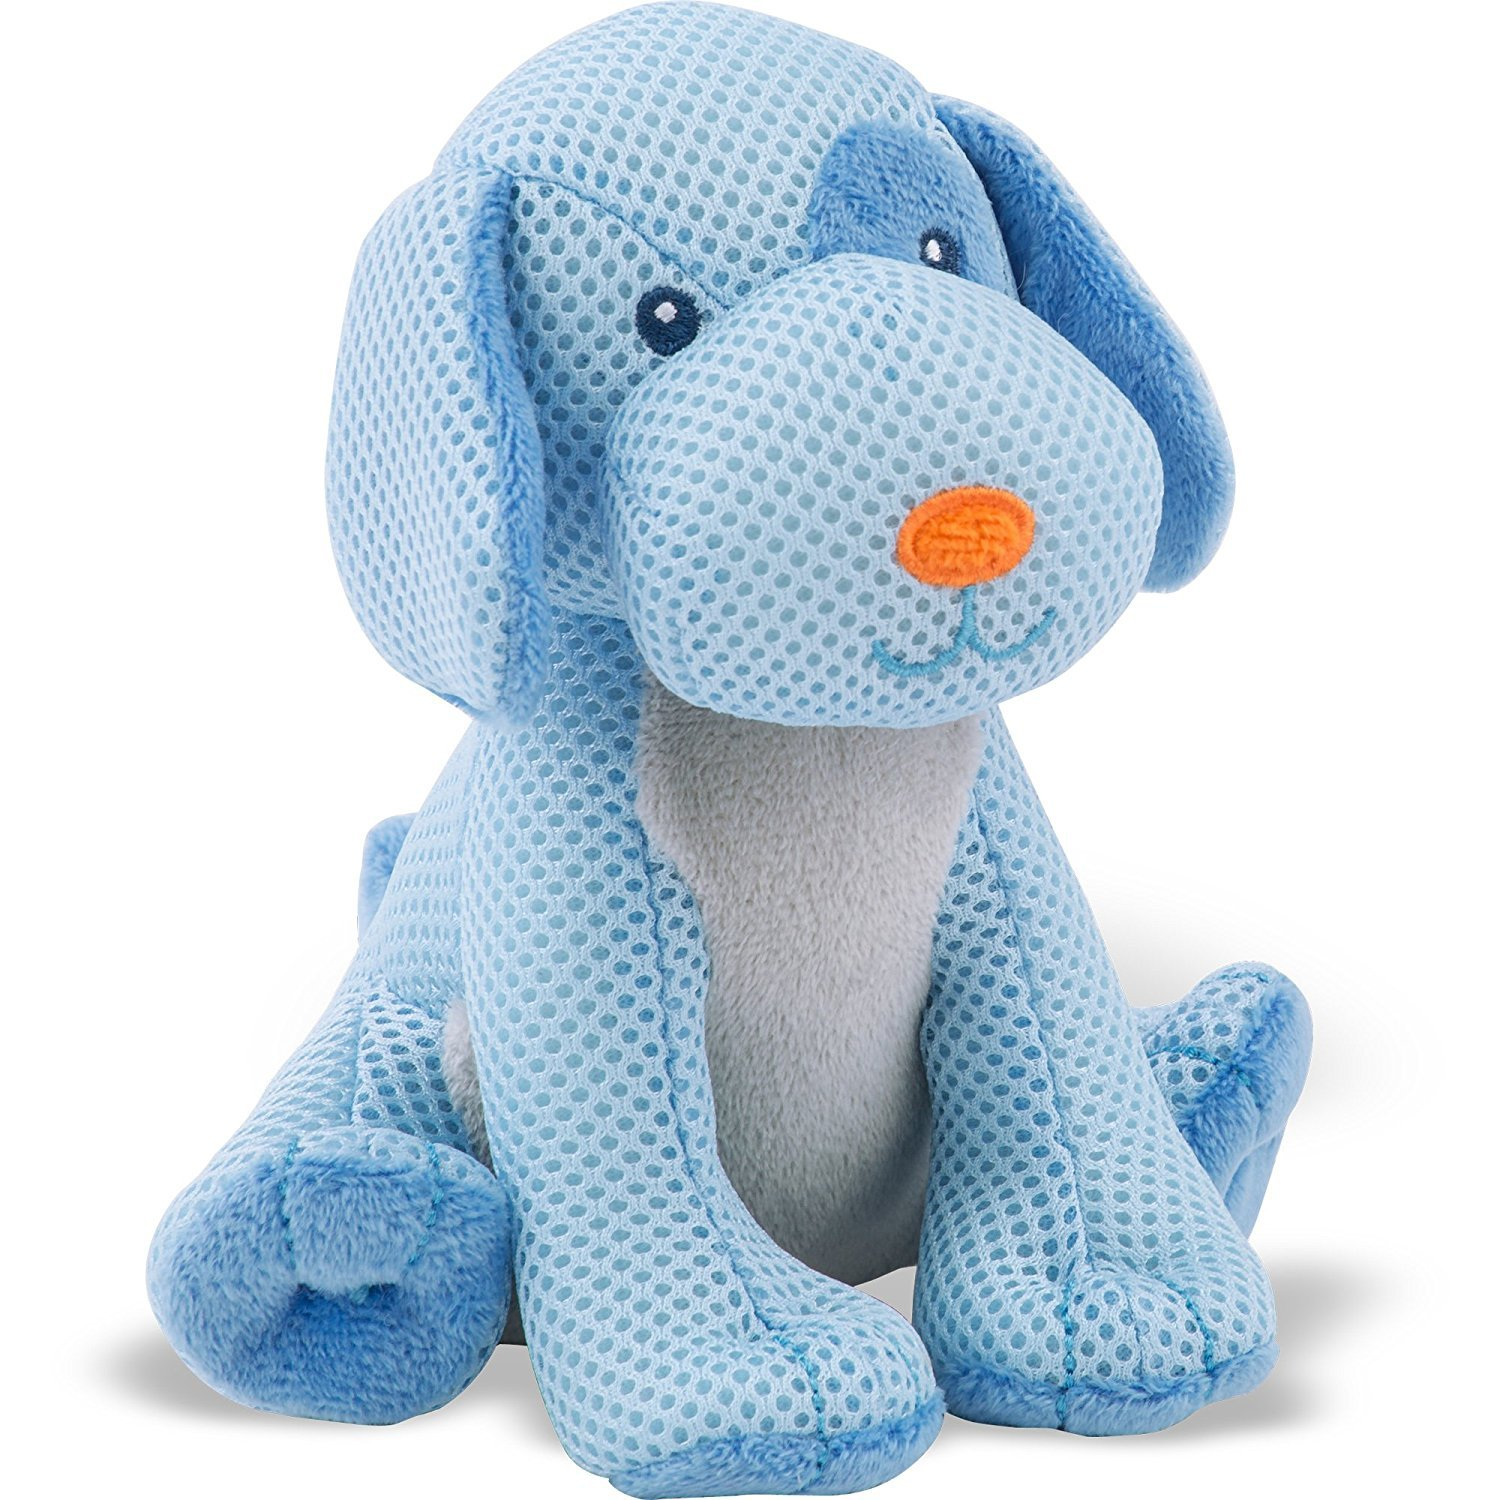 BreathableBaby Breathables Mesh Blue Puppy Dog Toy - 0+mths